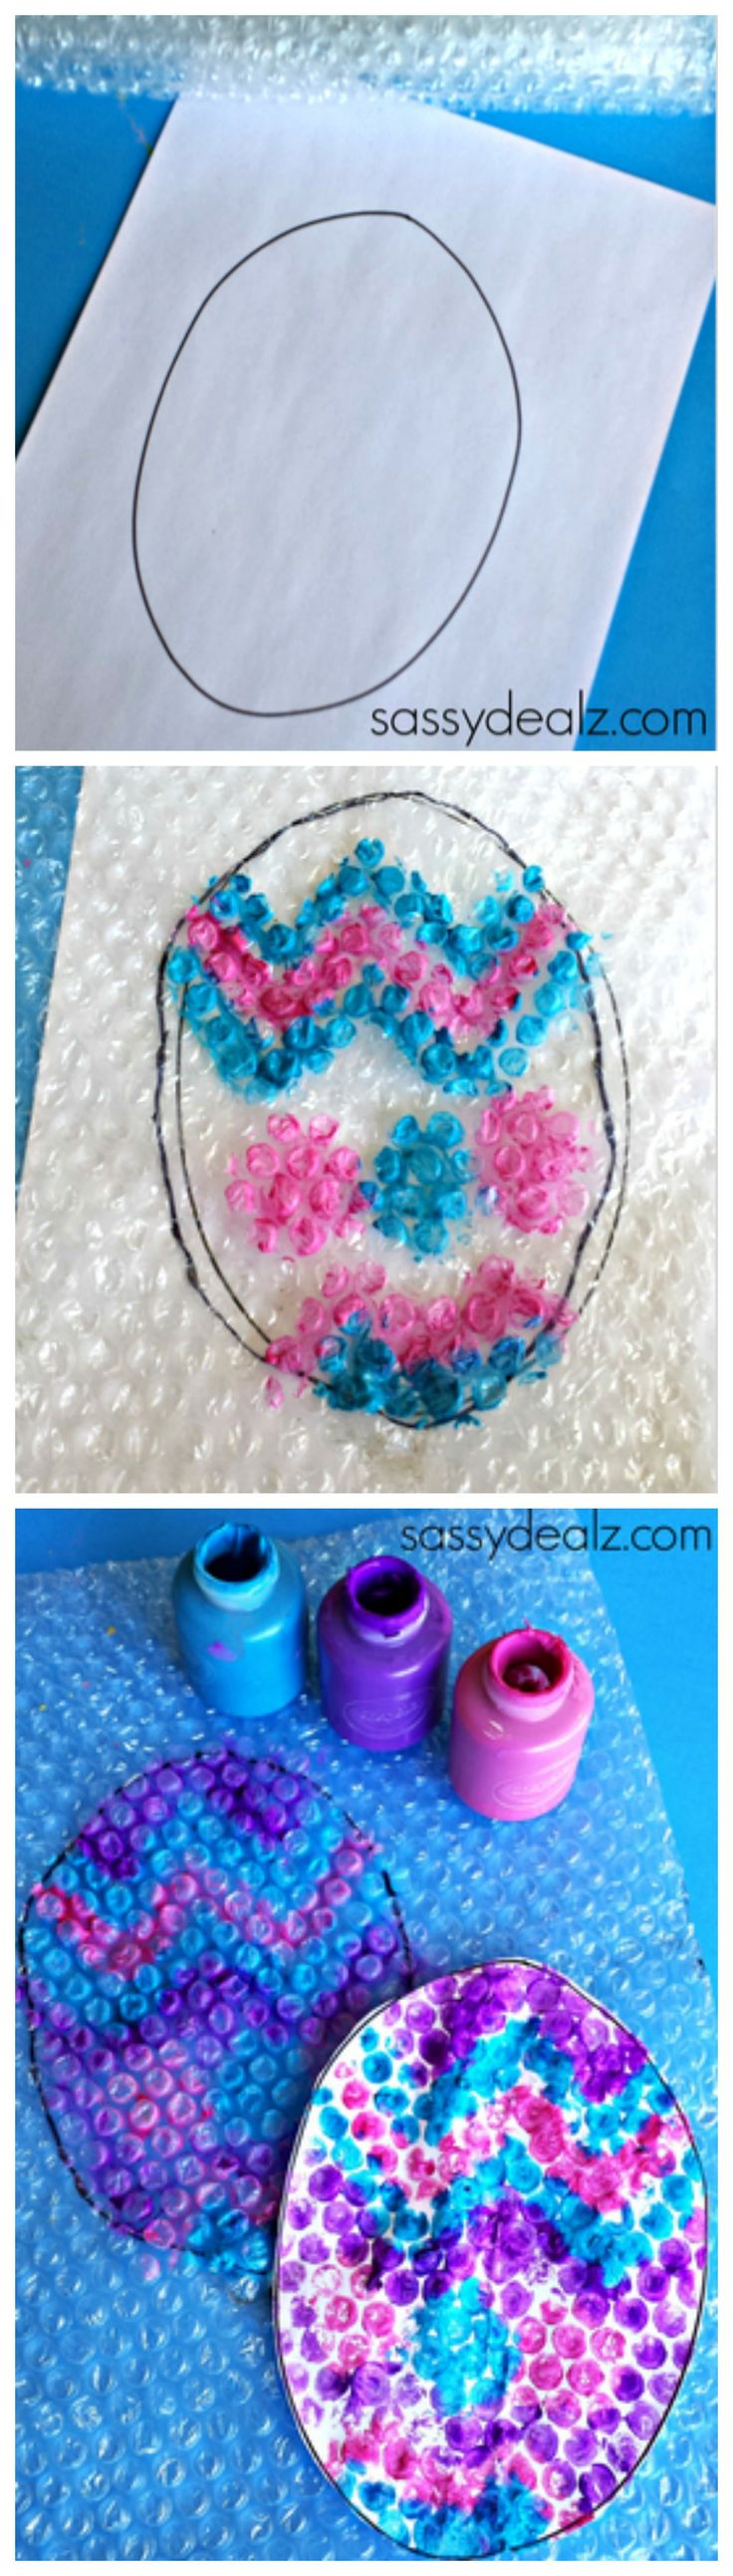 Bubble Wrap Easter Egg Craft for Kids #Easter art project #DIY | http://www.sassydealz.com/2014/04/bubble-wrap-easter-egg-stamp-craft-kids.html